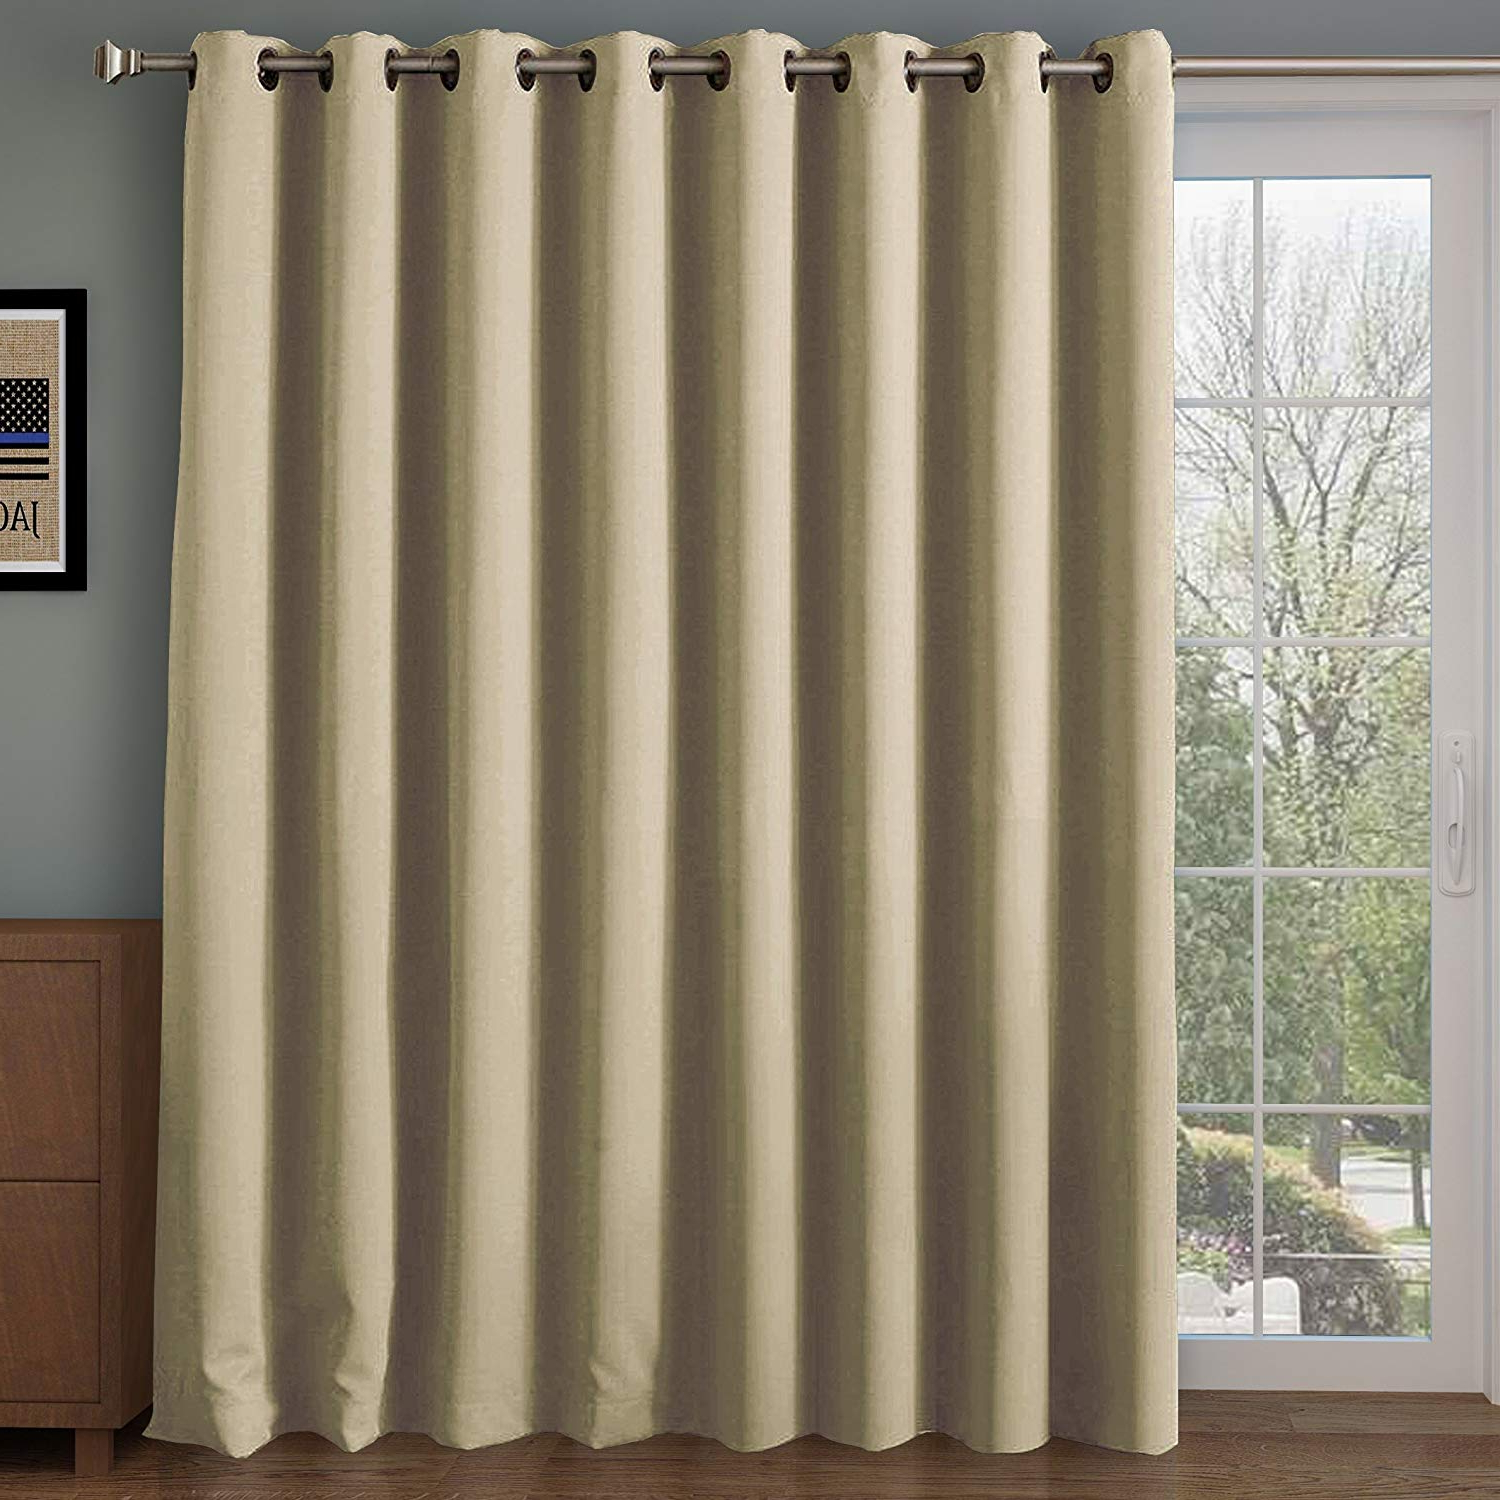 Flisol Home Regarding 2021 Silvertone Grommet Thermal Insulated Blackout Curtain Panel Pairs (View 16 of 20)